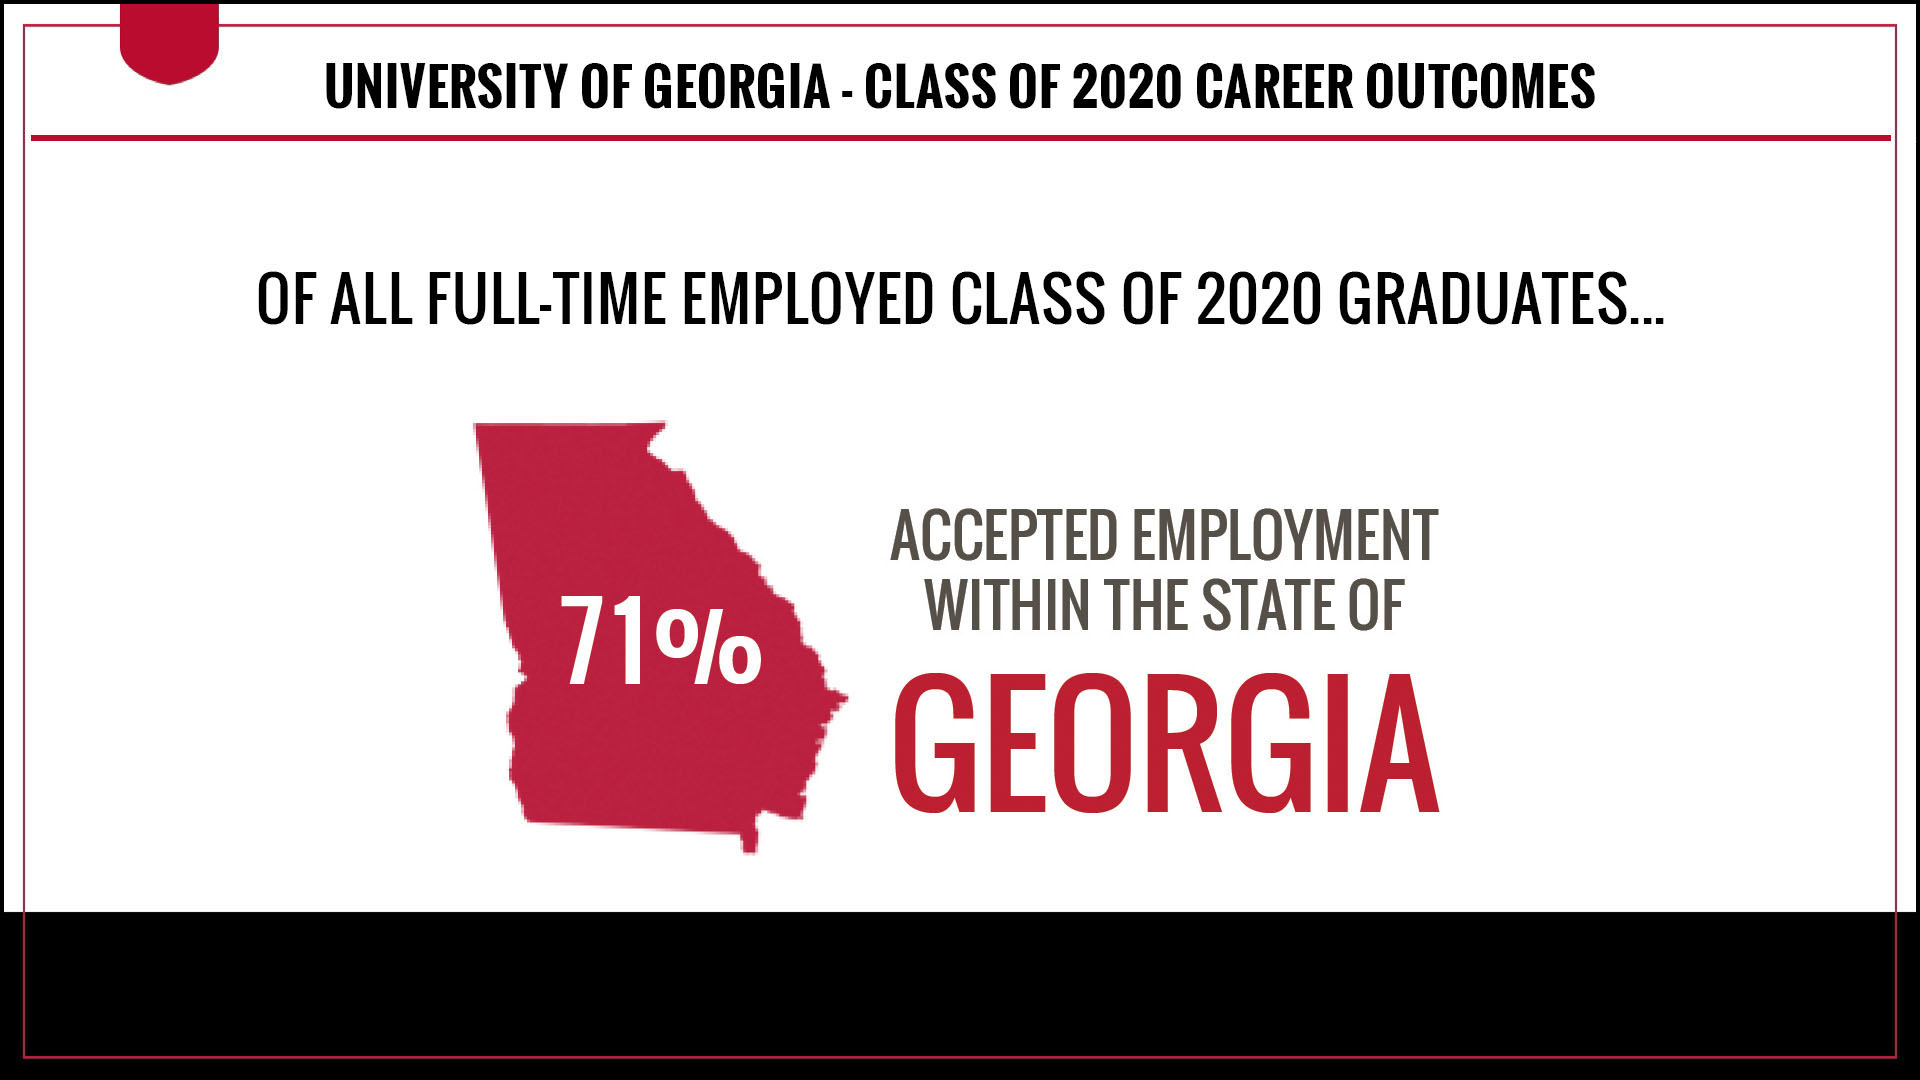 71 percent of full-time employed Class of 2020 graduates accepted employment in the state of Georgia